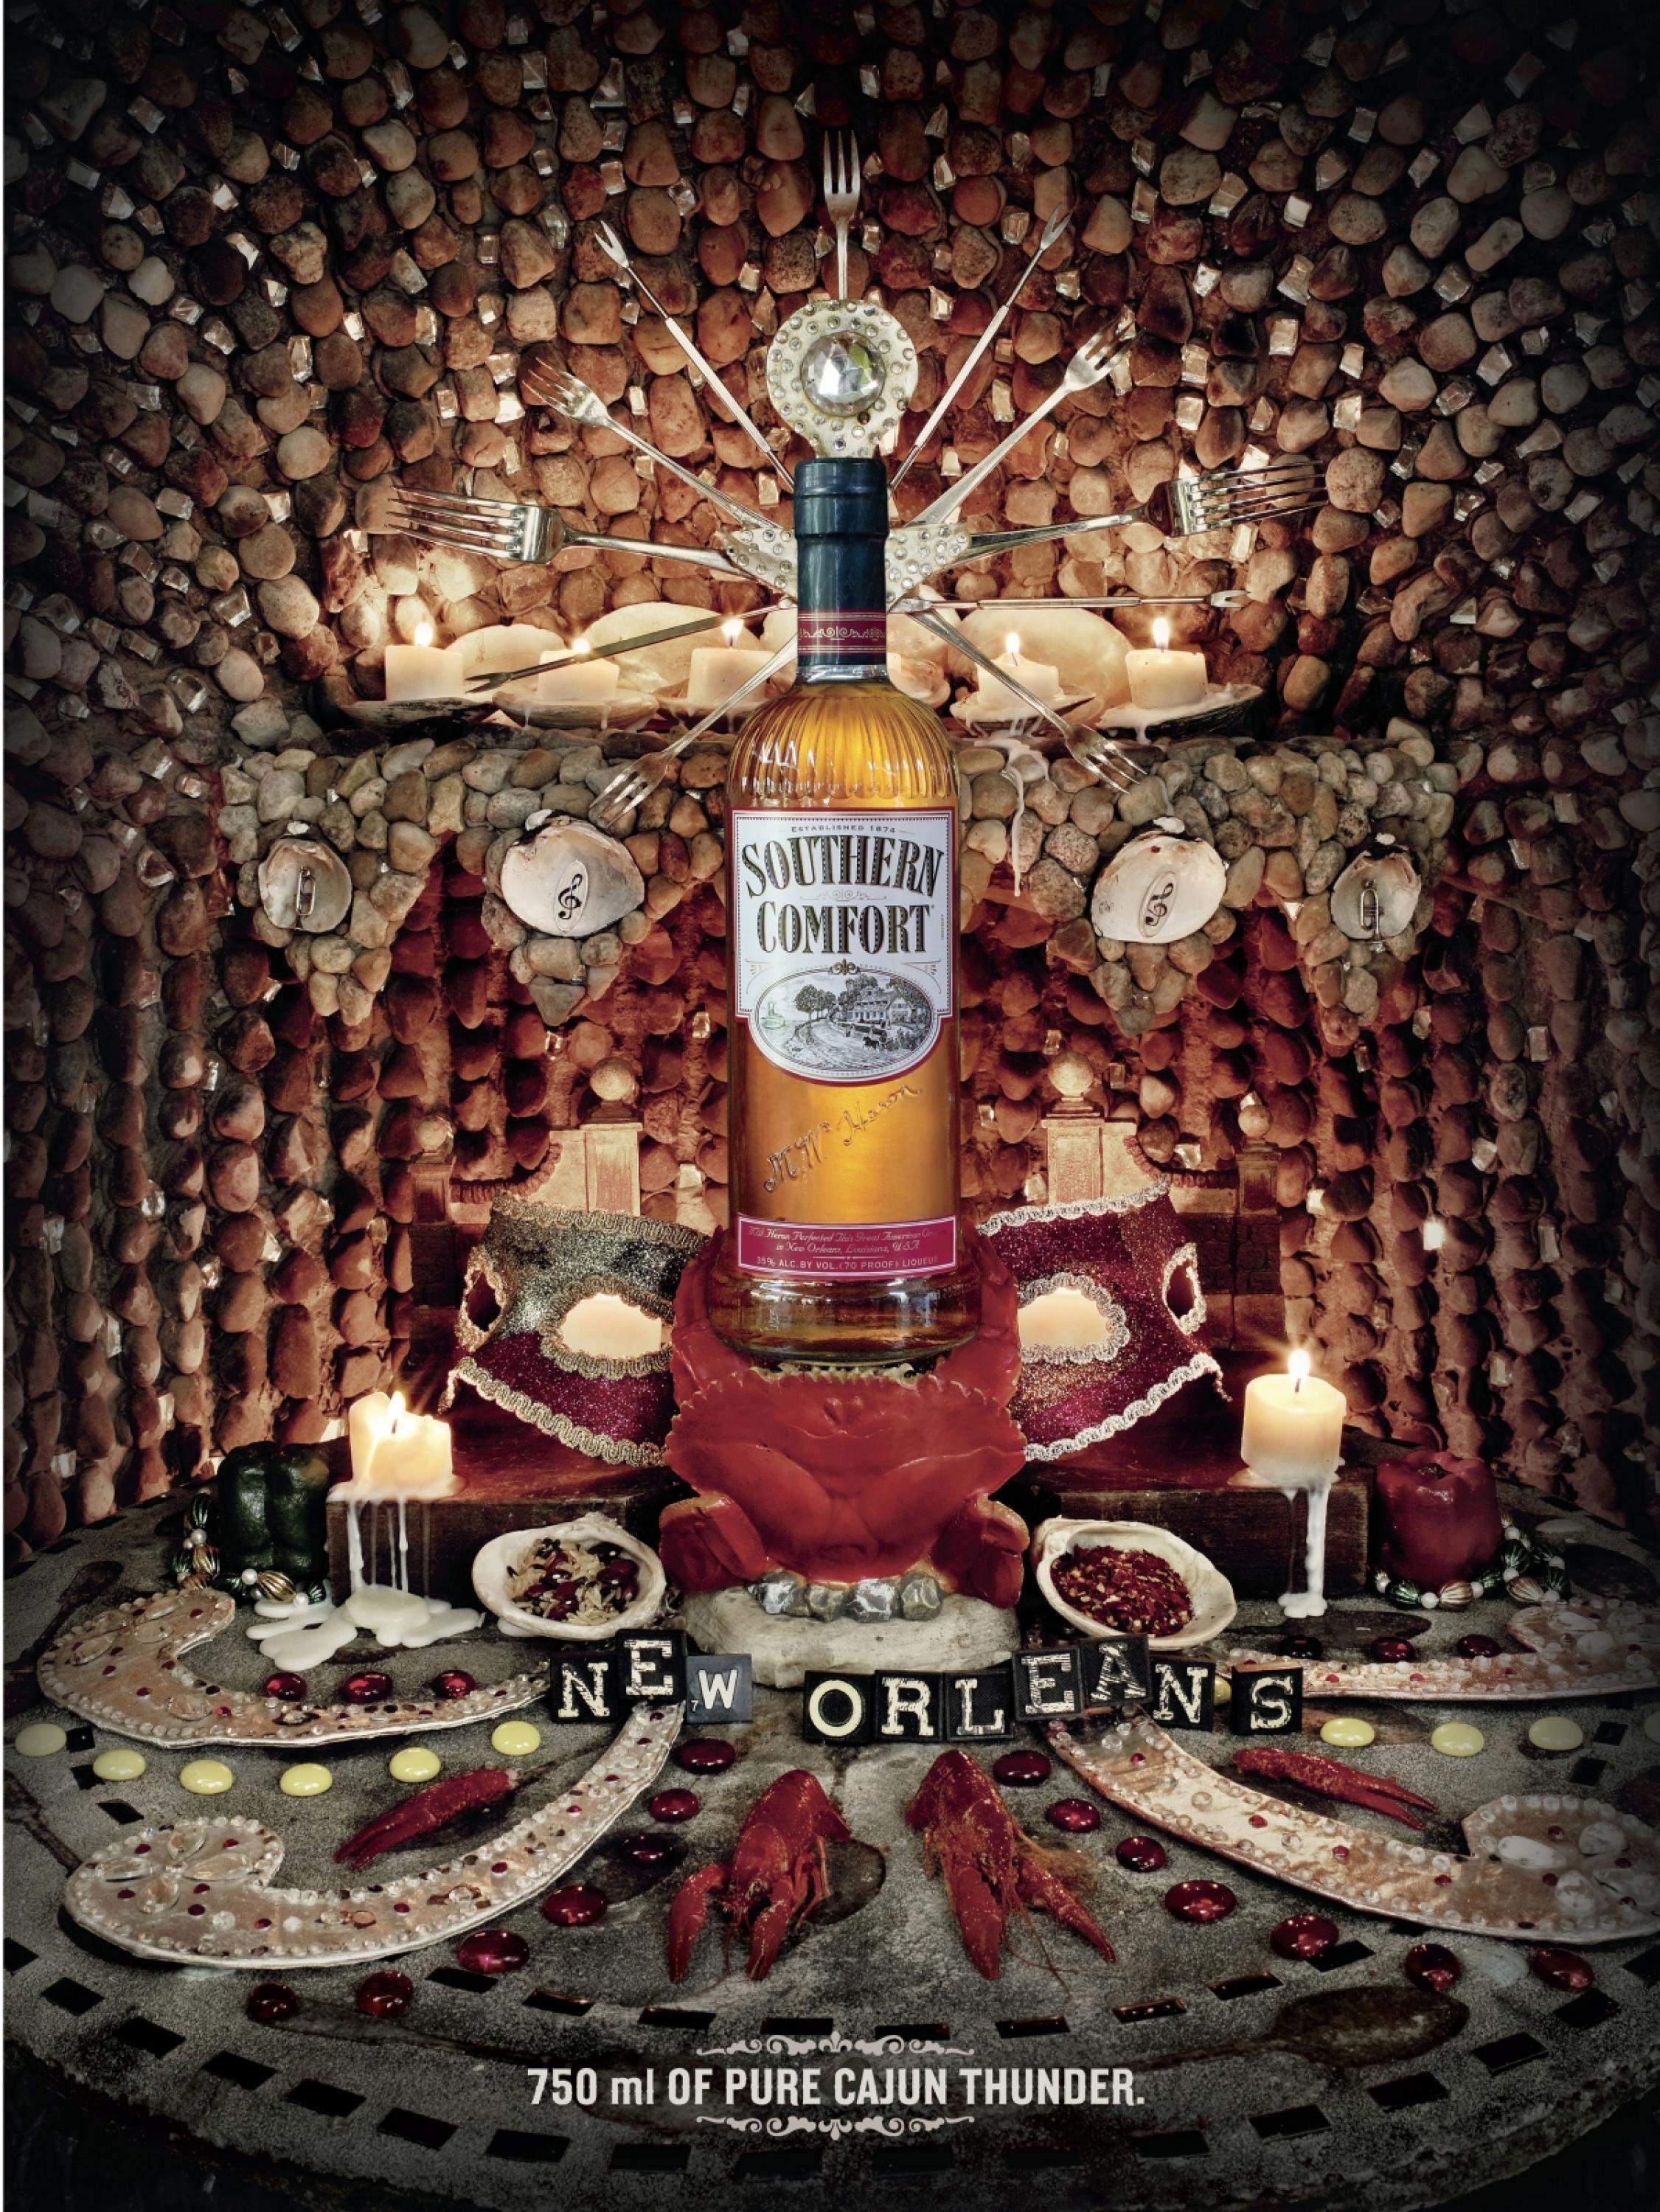 Adeevee Only Selected Creativity Brown Forman Southern Comfort New Orleans Pure Cajun Thunder Voodoo Y